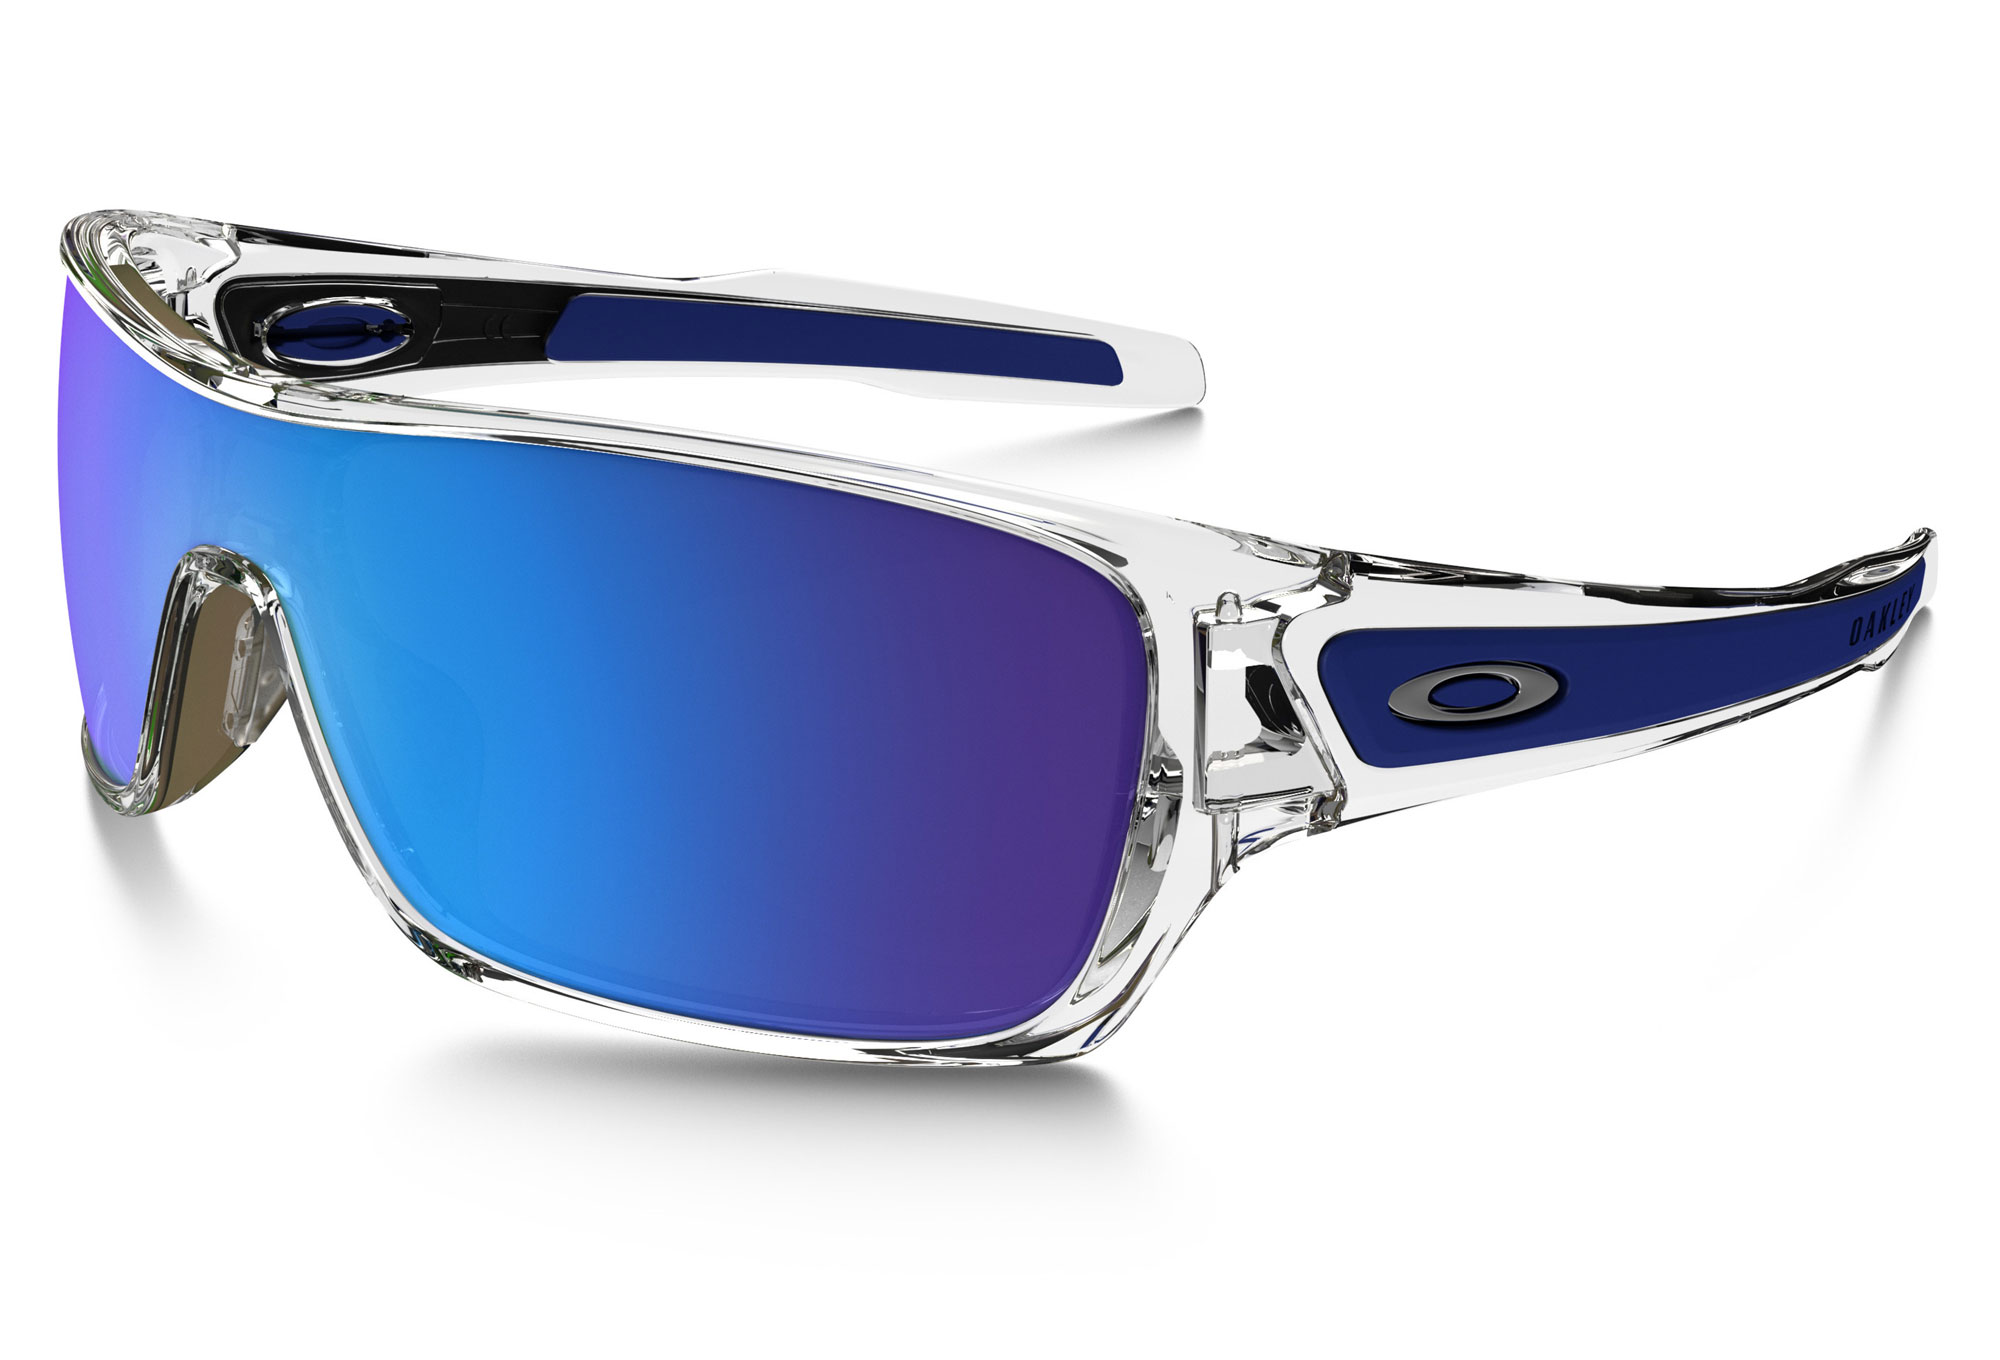 275f90f2a3 OAKLEY Sunglasses TURBINE ROTOR Polished Clear   Sapphire Iridium OO9307-10